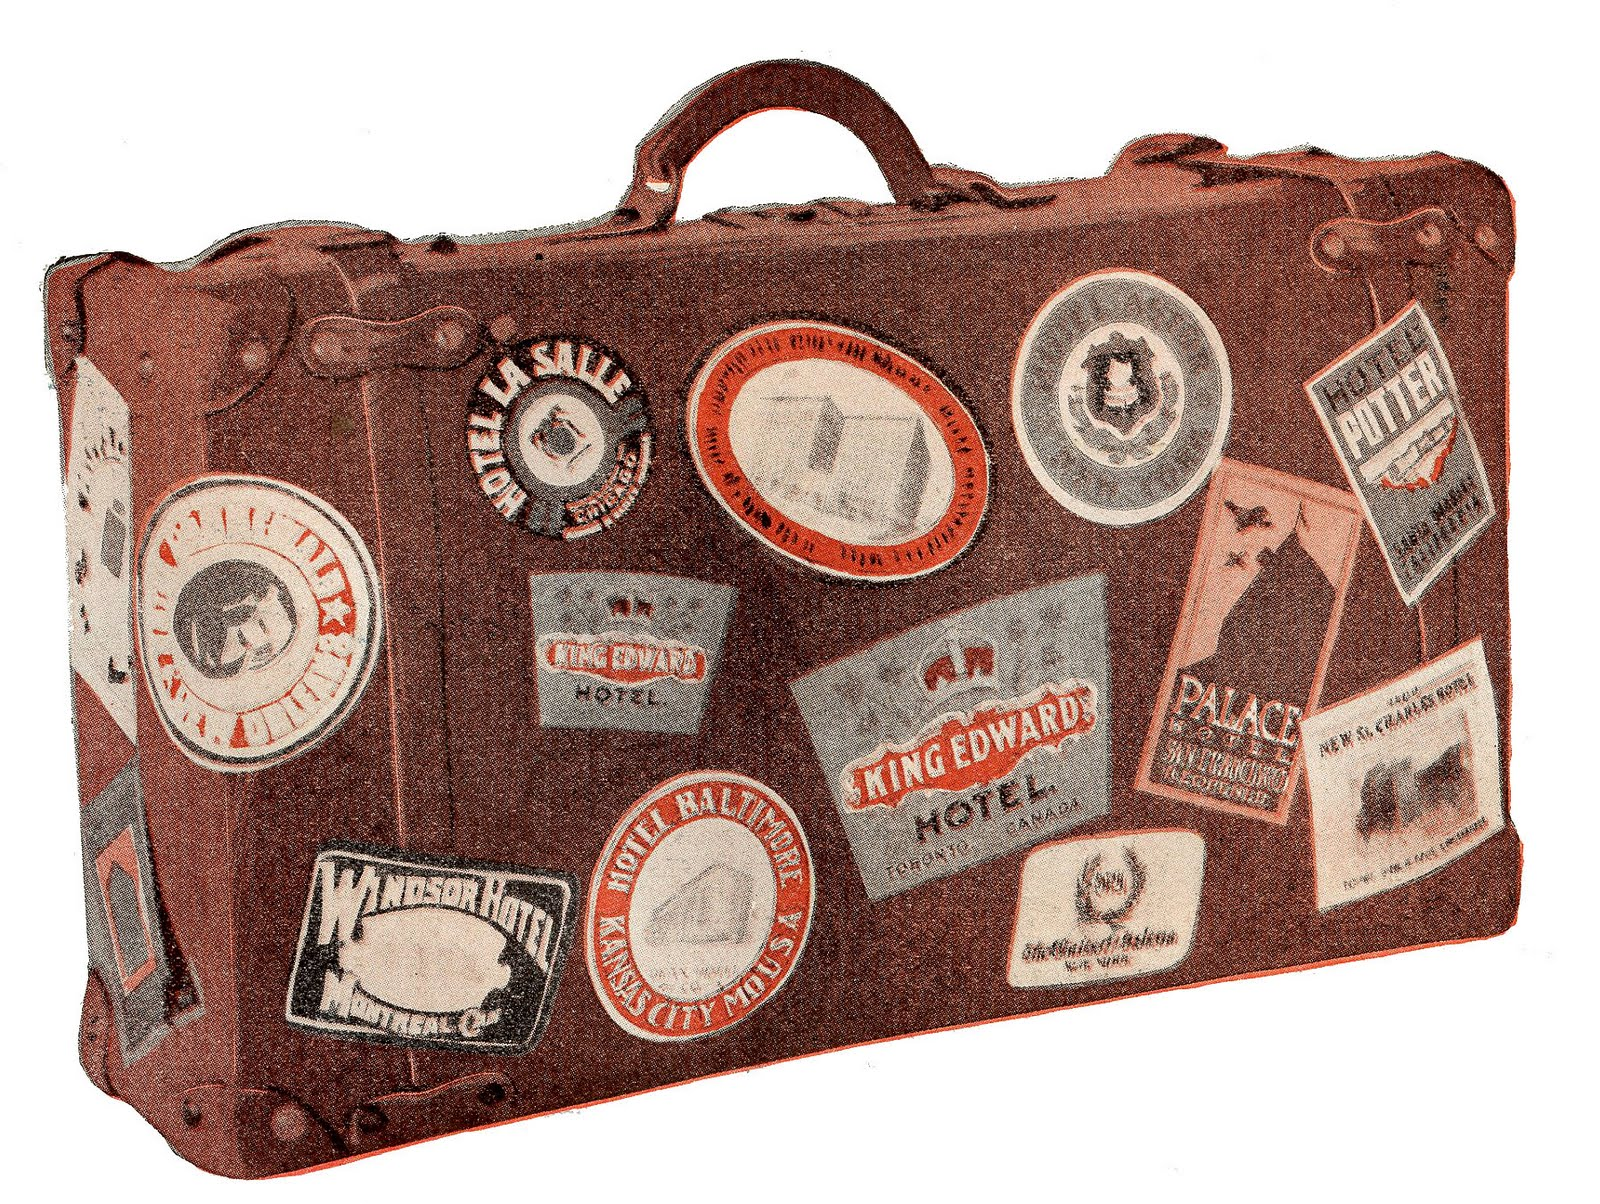 Vintage luggage stickers clipart picture freeuse library Free Vintage Luggage Cliparts, Download Free Clip Art, Free ... picture freeuse library